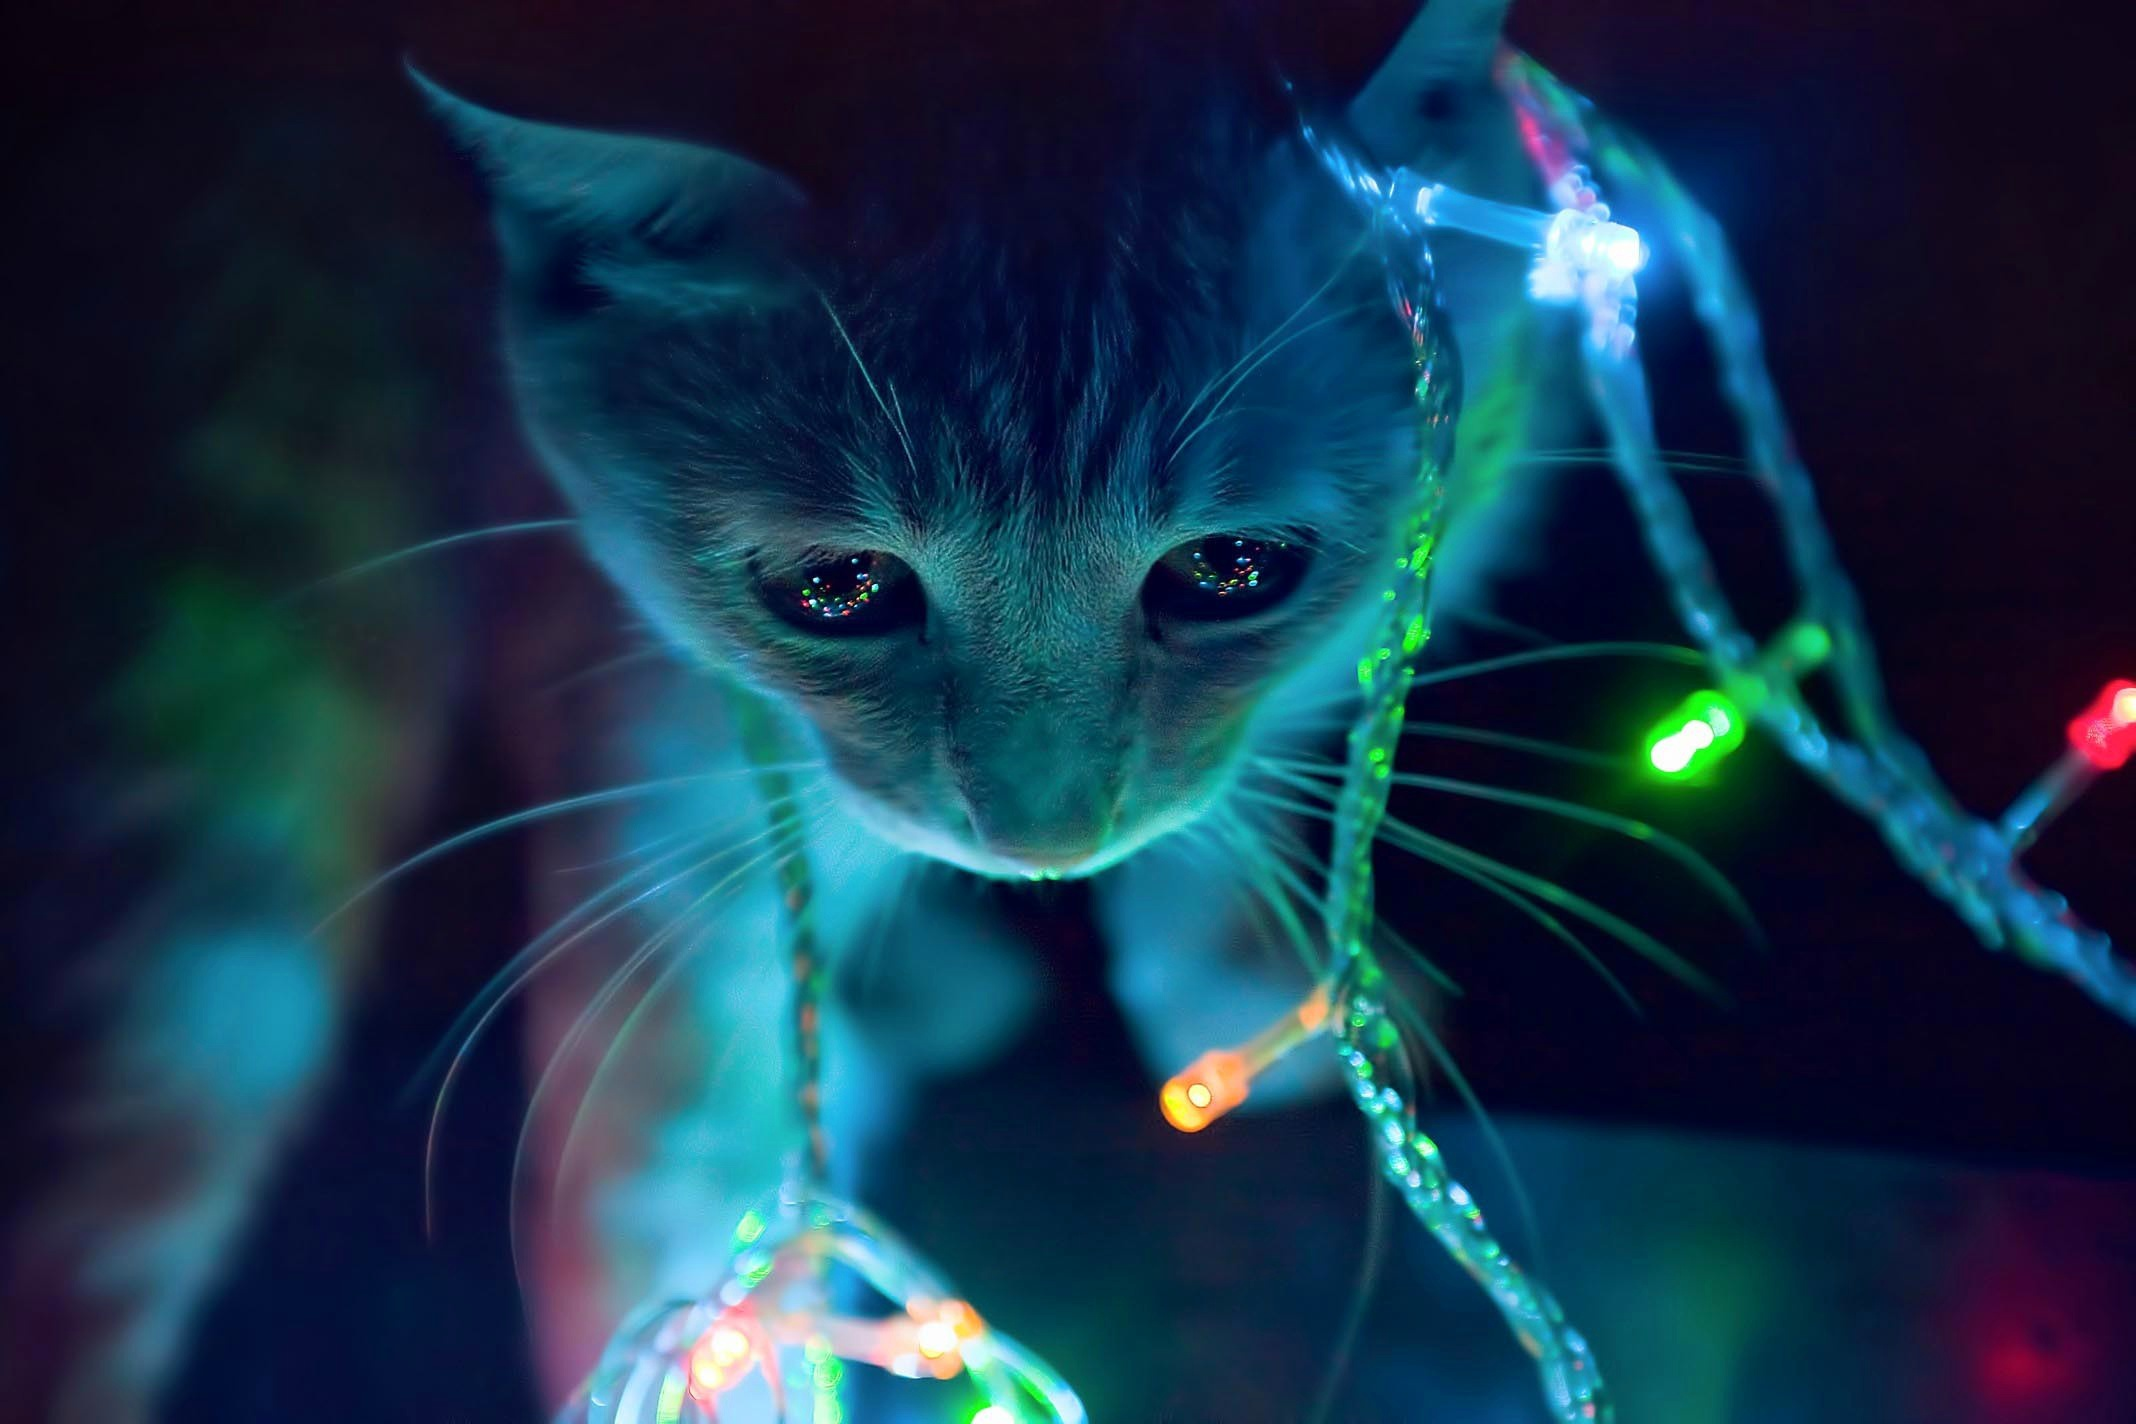 animated cat in winter christmas lights hd background christmas lights 2136x1424